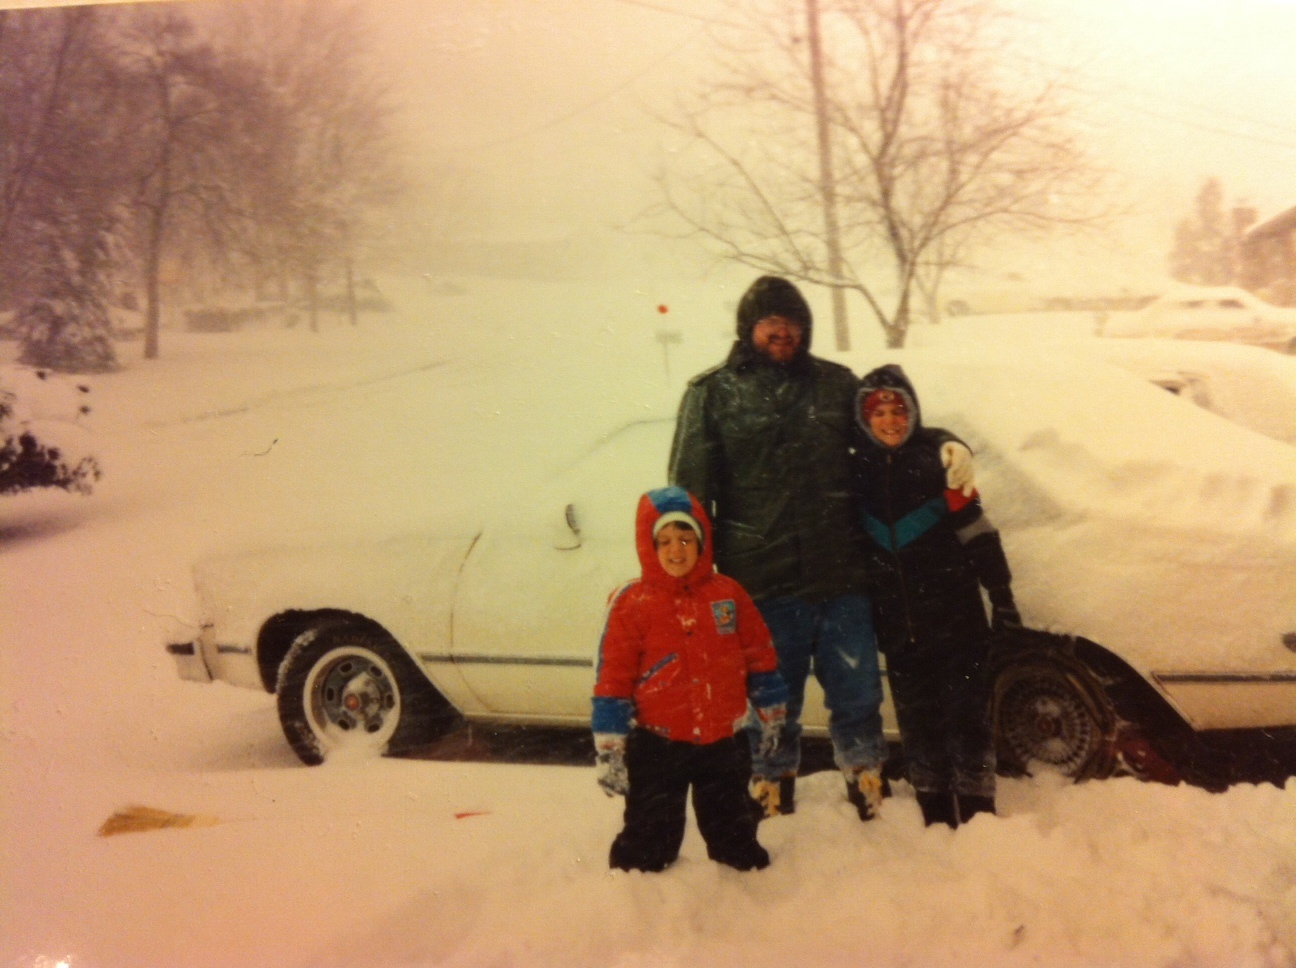 WCYB meteorologist David Boyd plays in the snow during the blizzard of 1993.